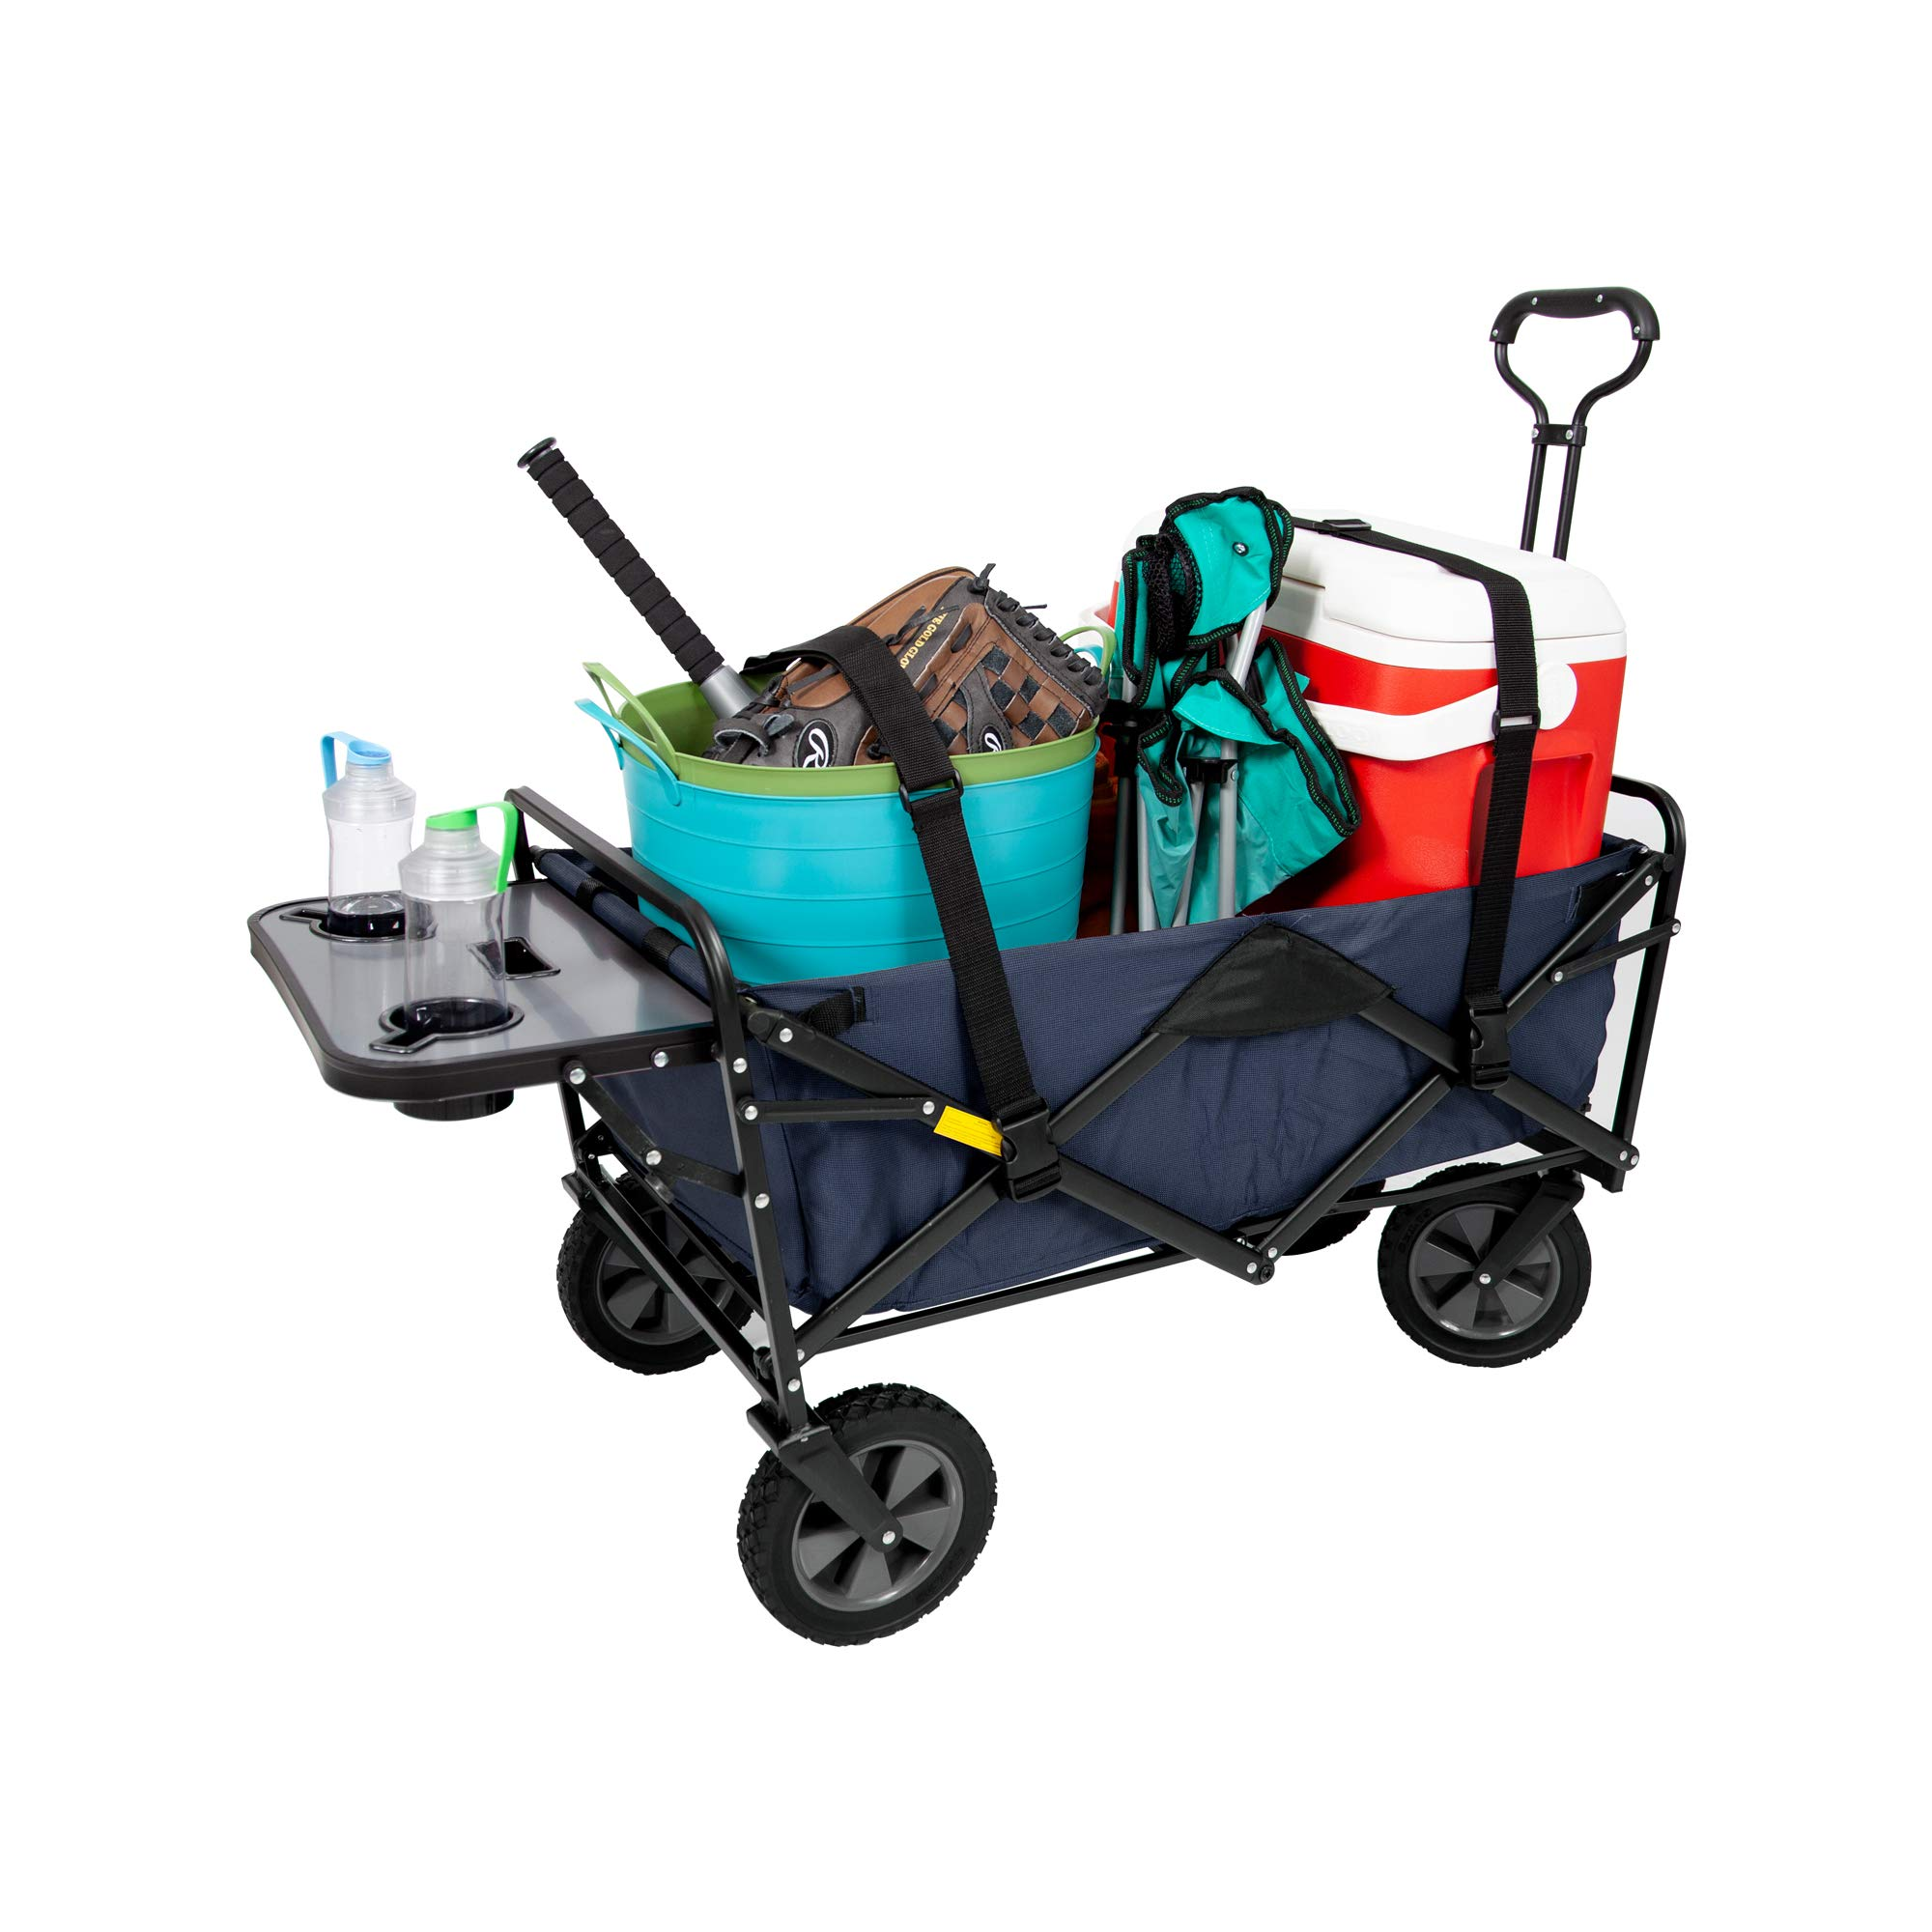 Mac Sports Collapsible Outdoor Utility Wagon with Folding Table and Drink Holders with Straps, Blue by Mac Sports